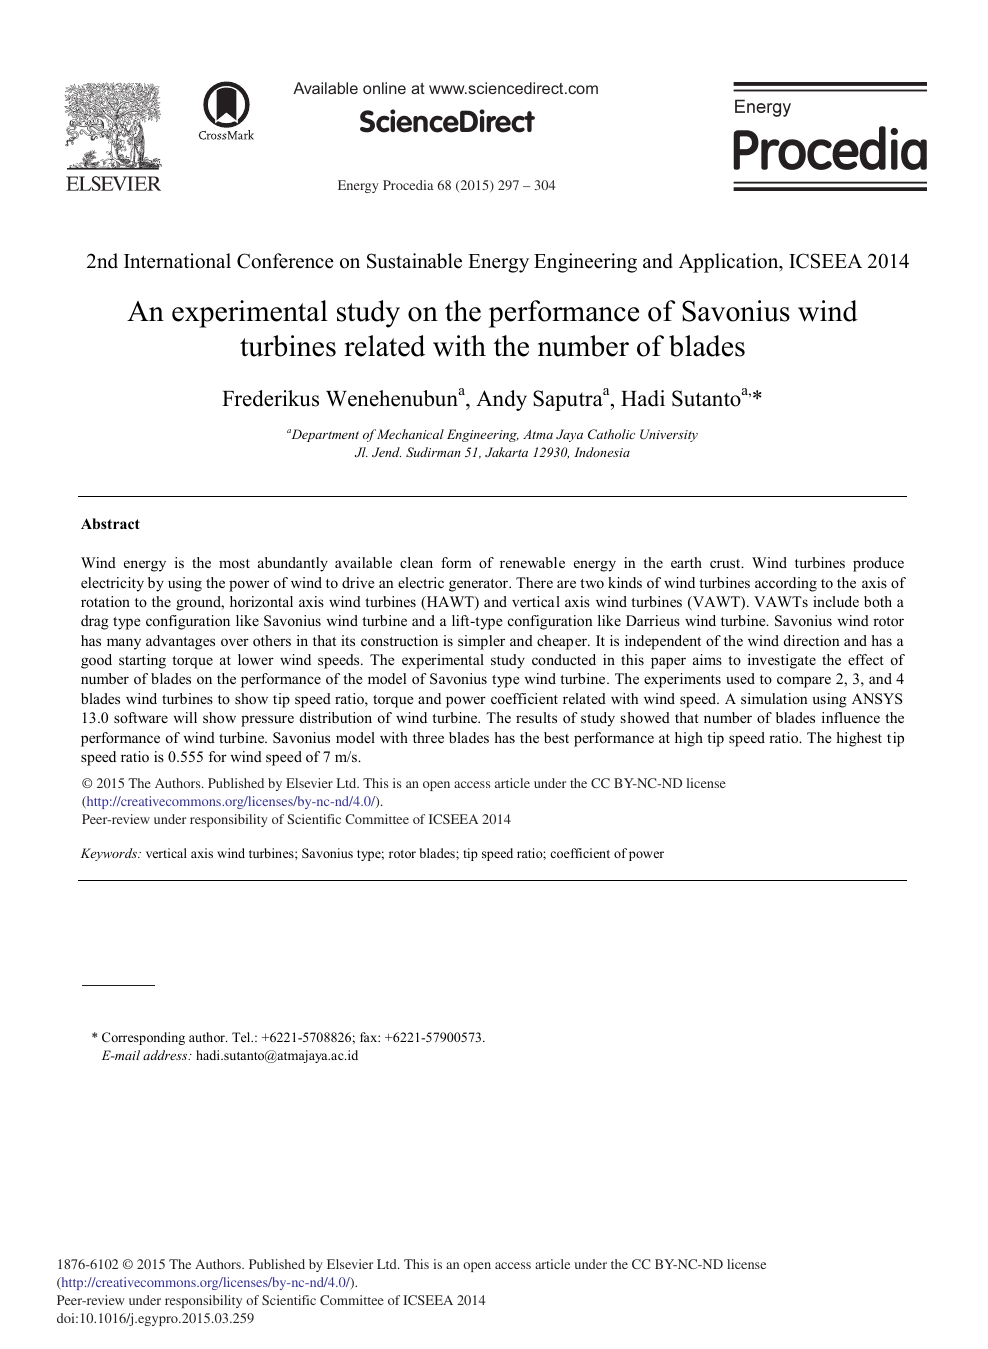 An Experimental Study on the Performance of Savonius Wind